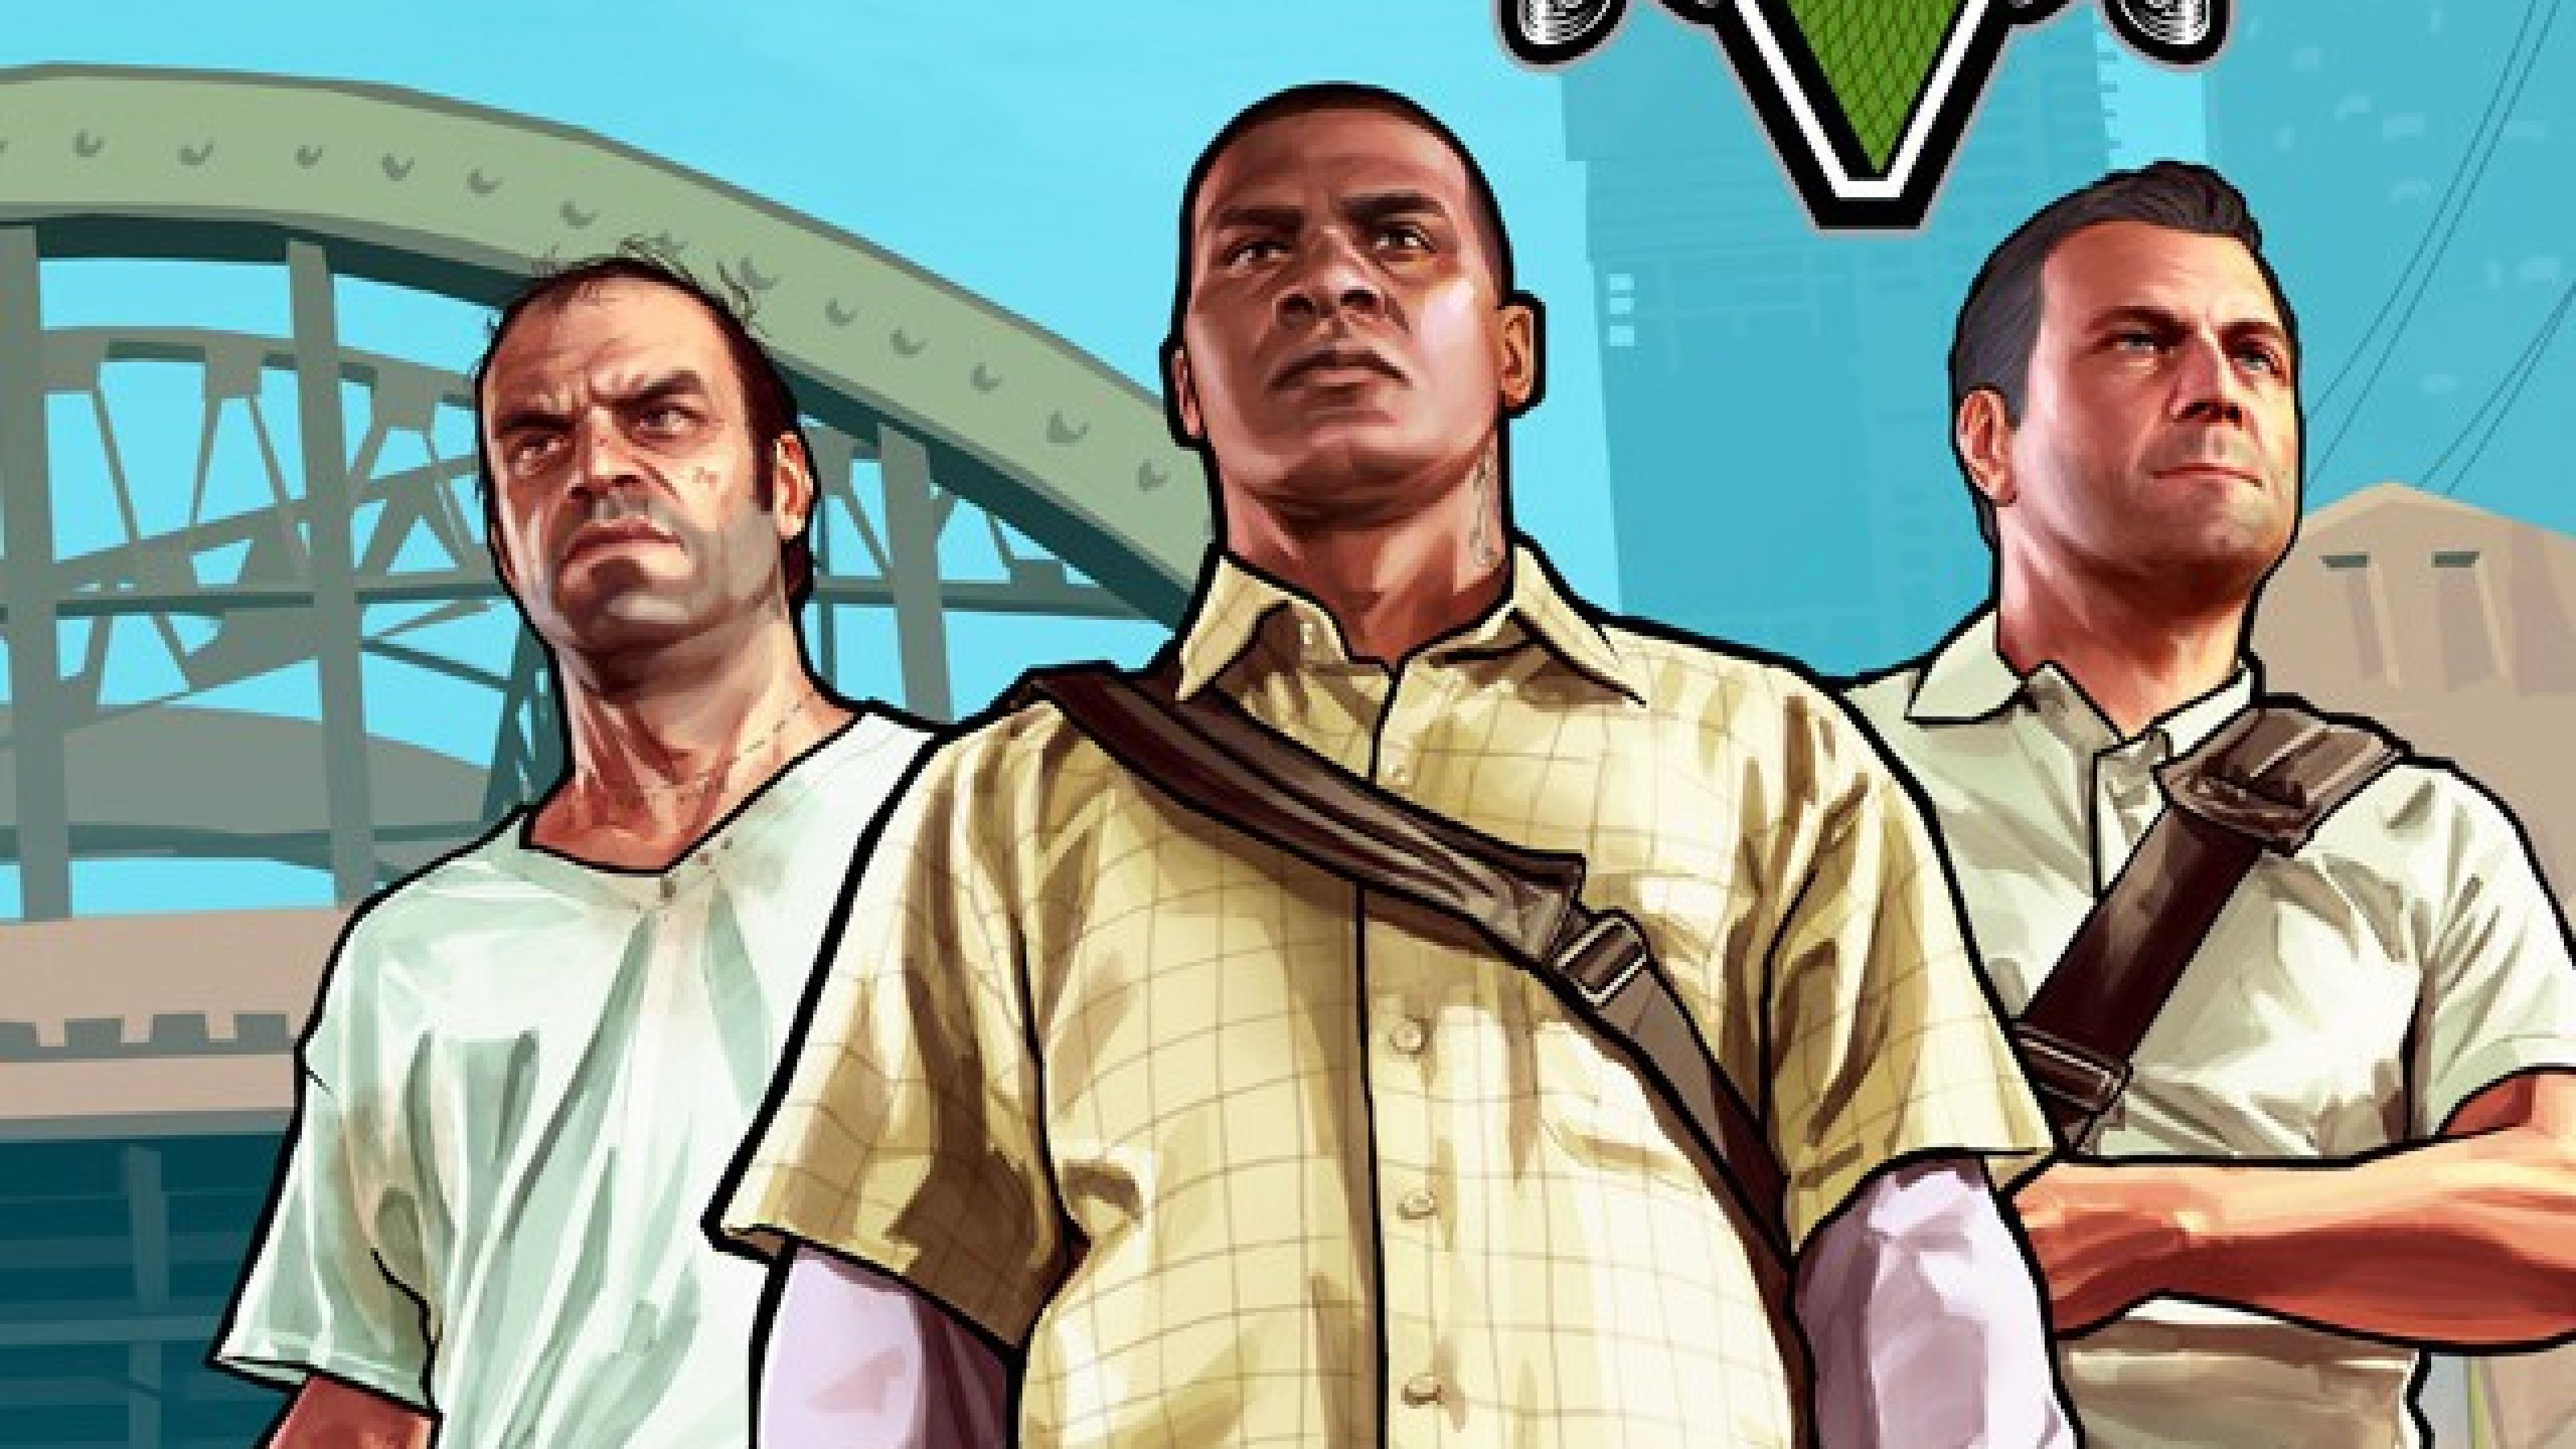 Gta 5 iphone wallpaper 75 images 2048x2048 preview grand theft auto v voltagebd Image collections